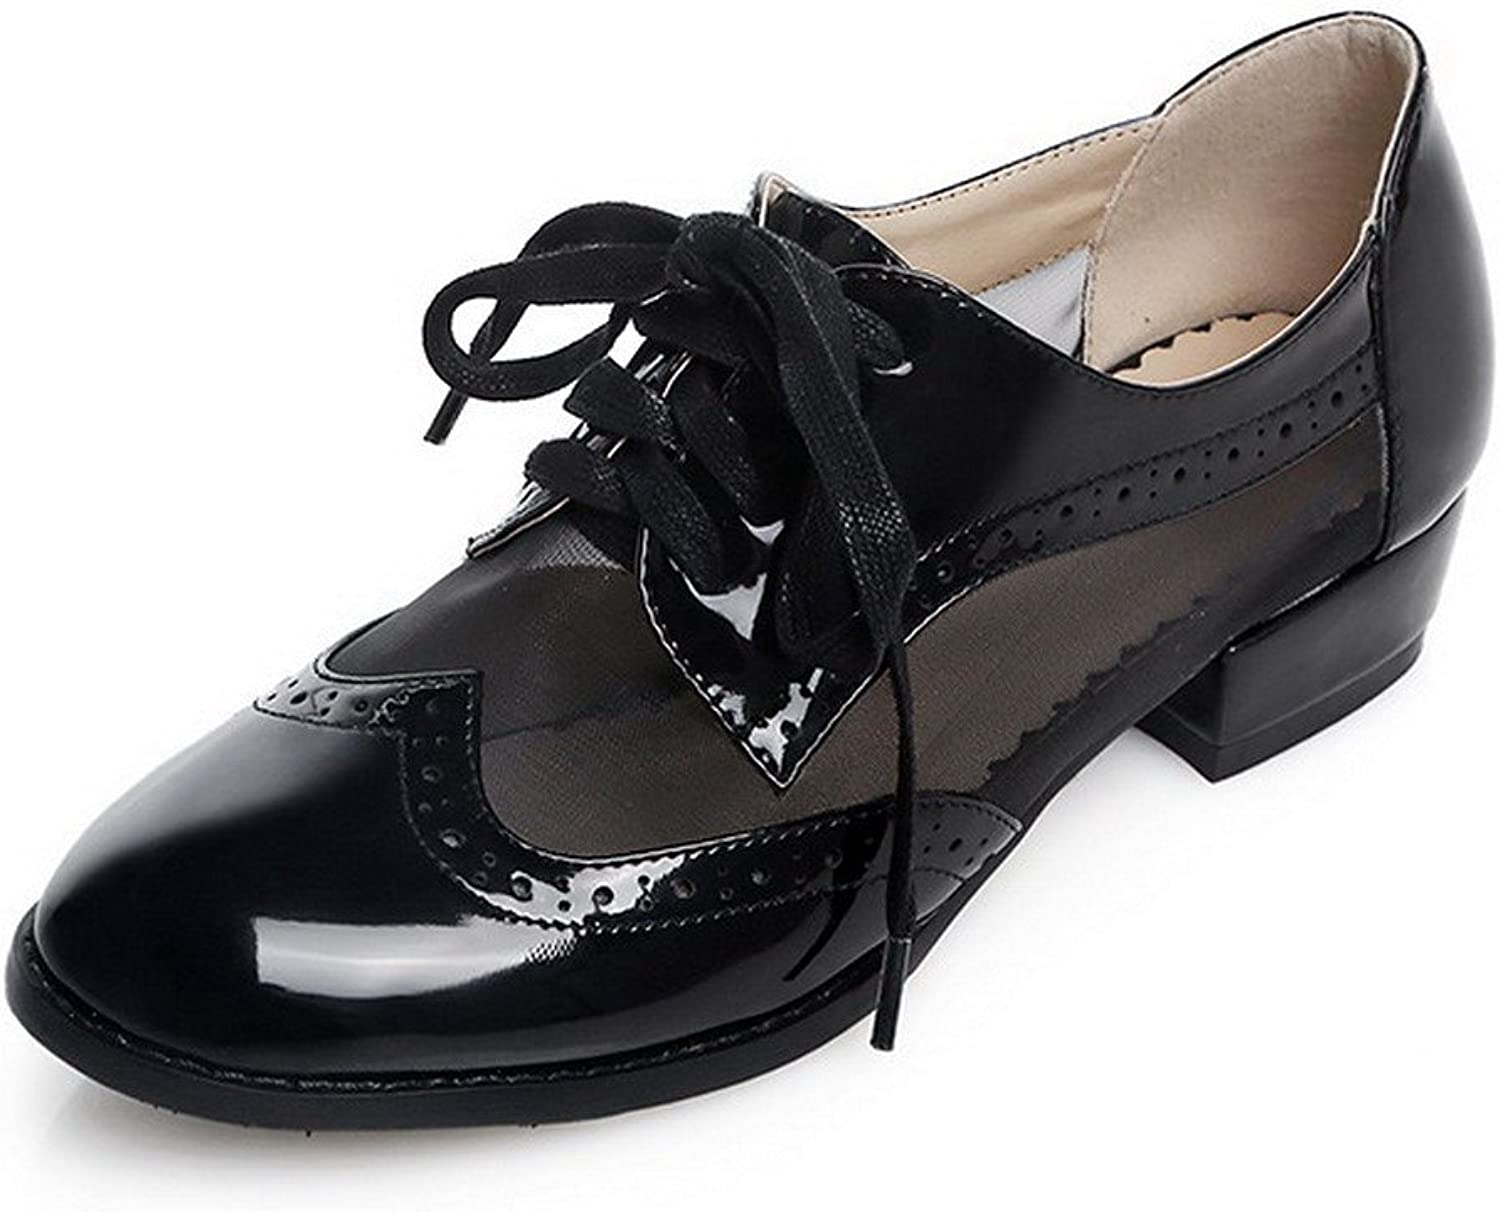 WeiPoot Women's Patent Leather Assorted color Closed-Toe Pumps-shoes with Assorted color and Hollow Out